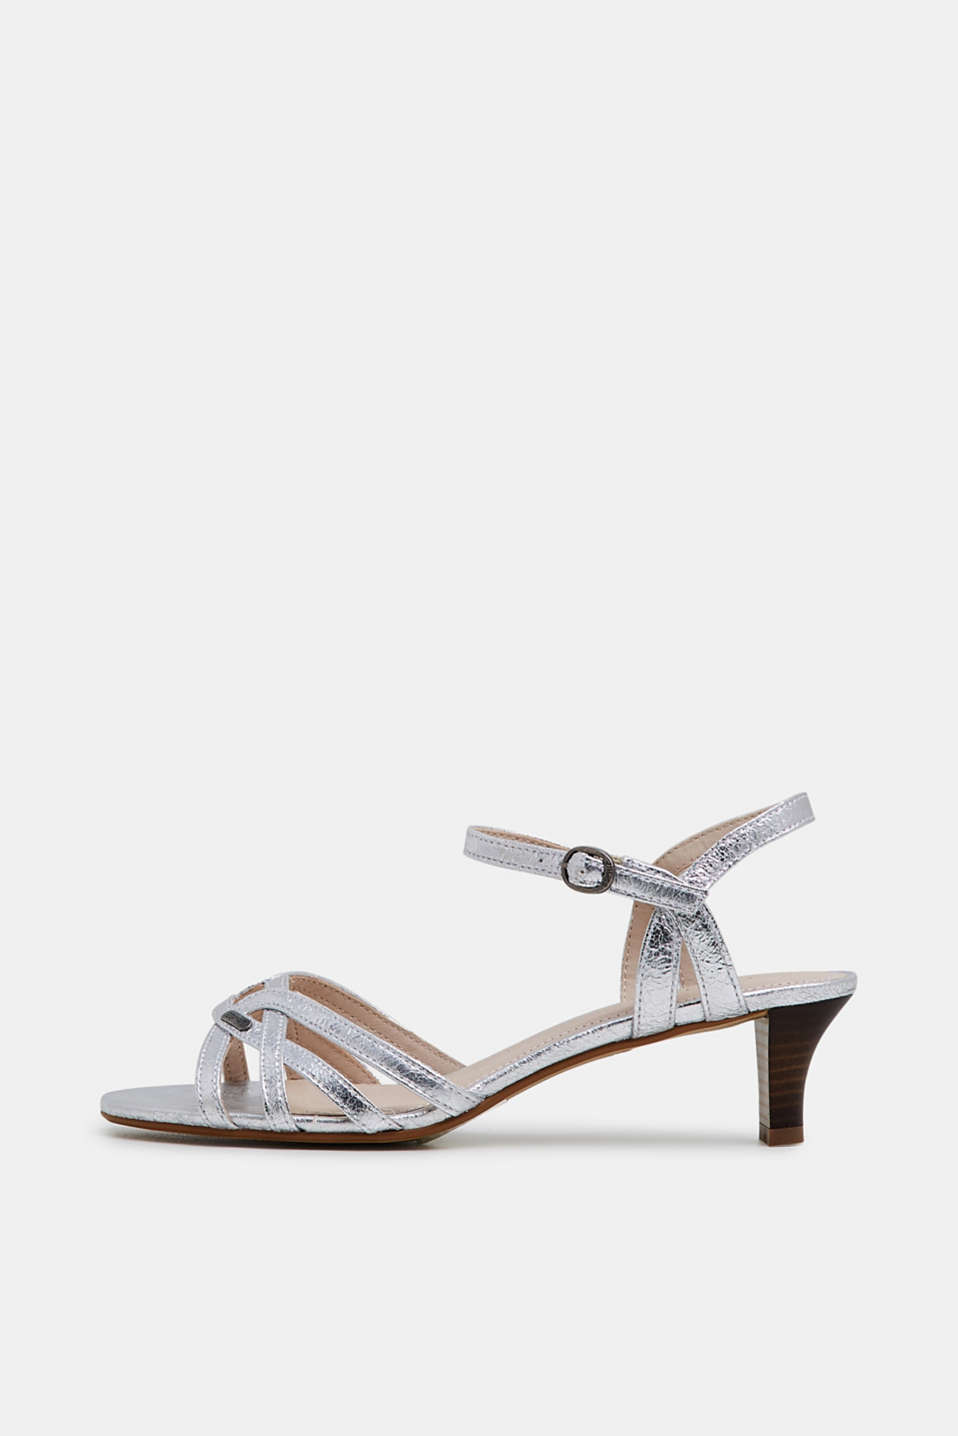 Esprit - Metallic-Sandalette in gecrashter Leder-Optik